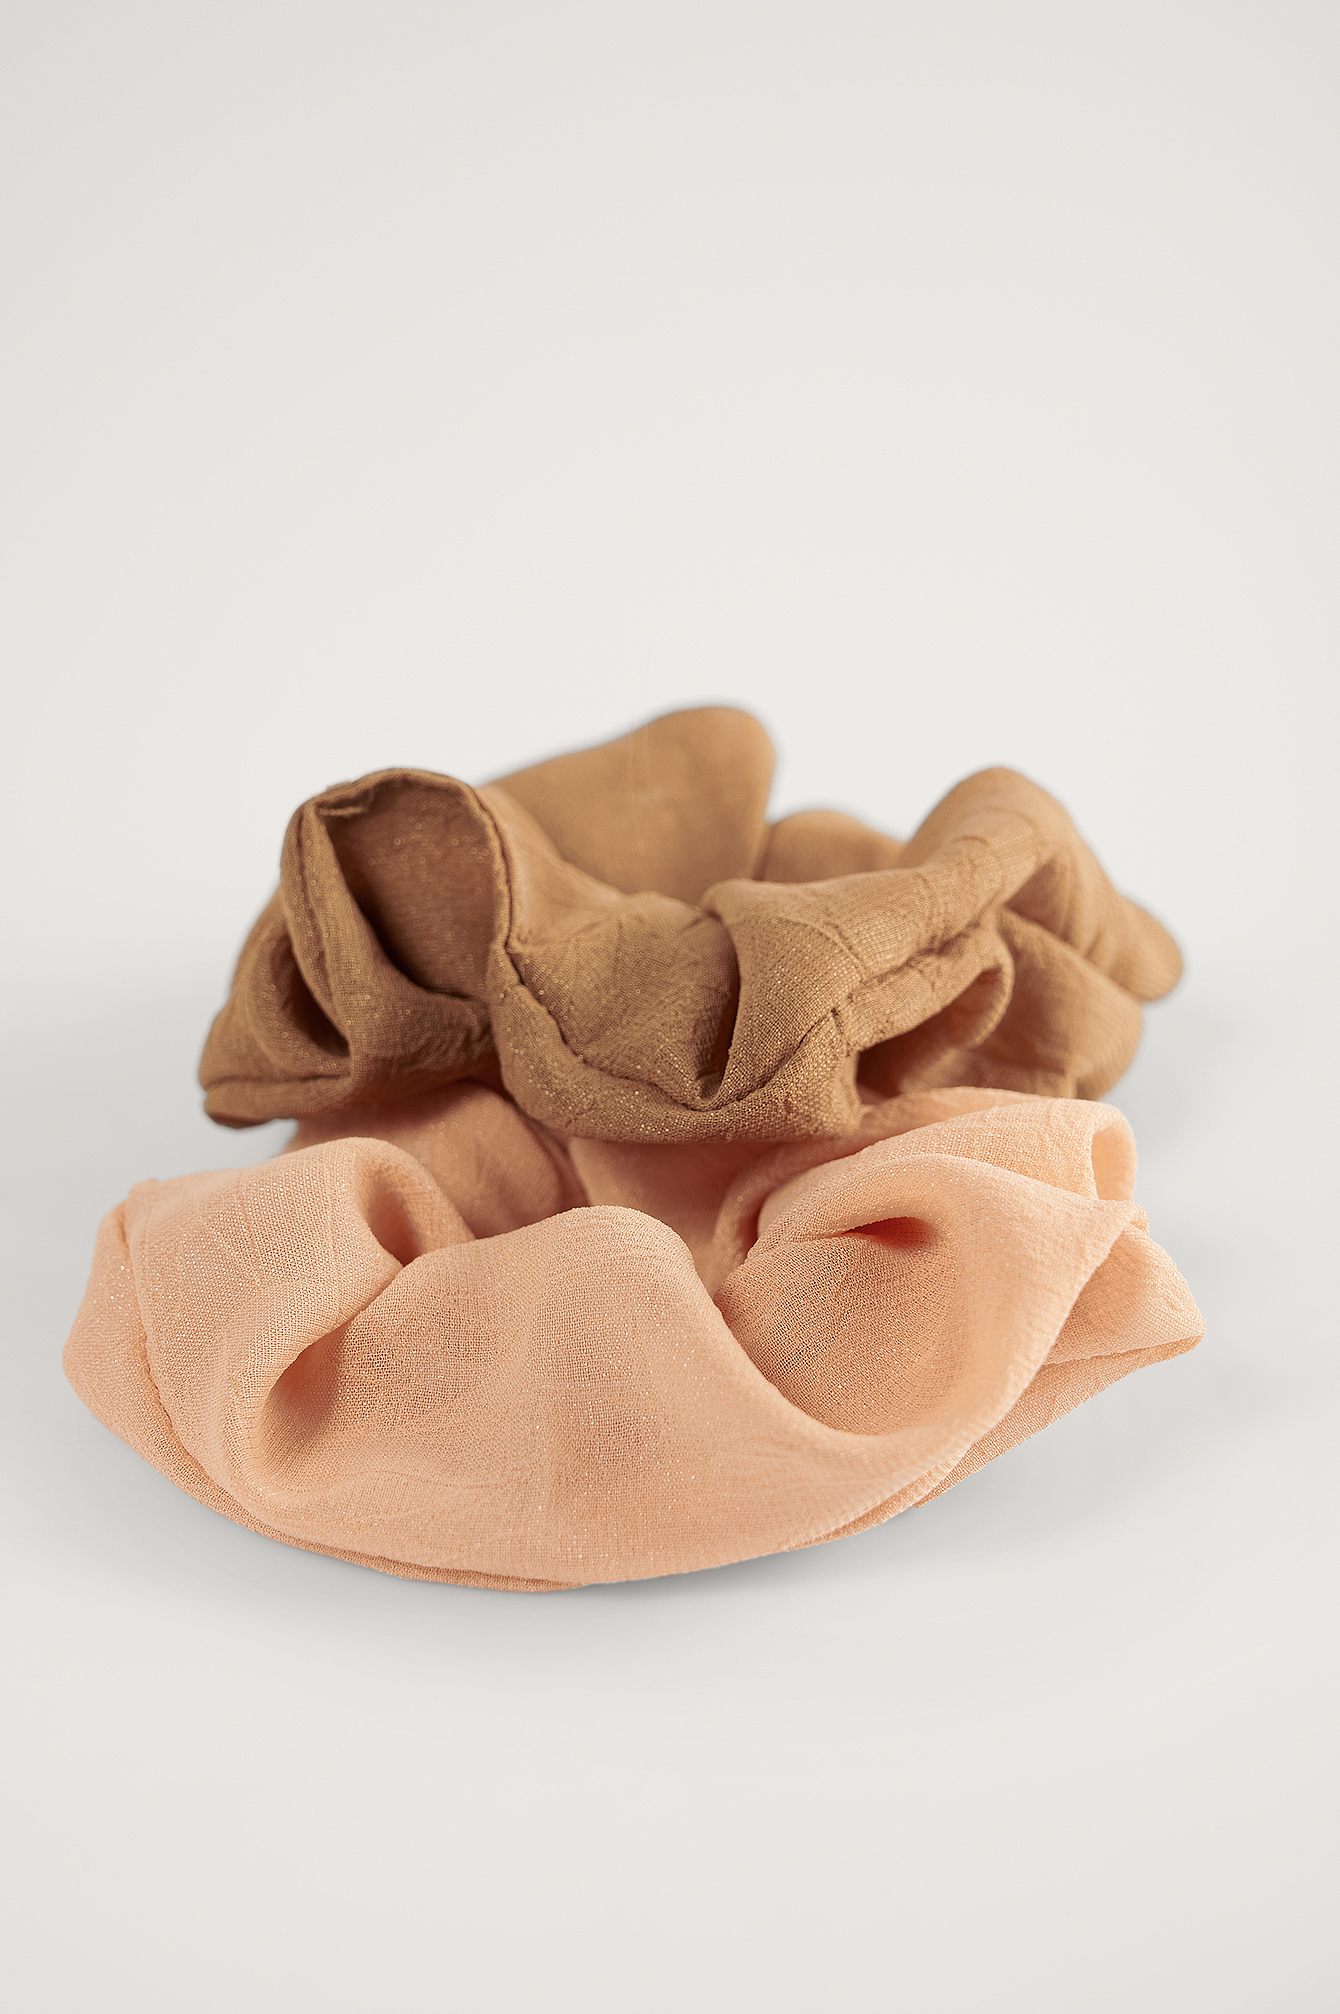 Brown/Beige Basic Woven Scrunchies (2-pack)